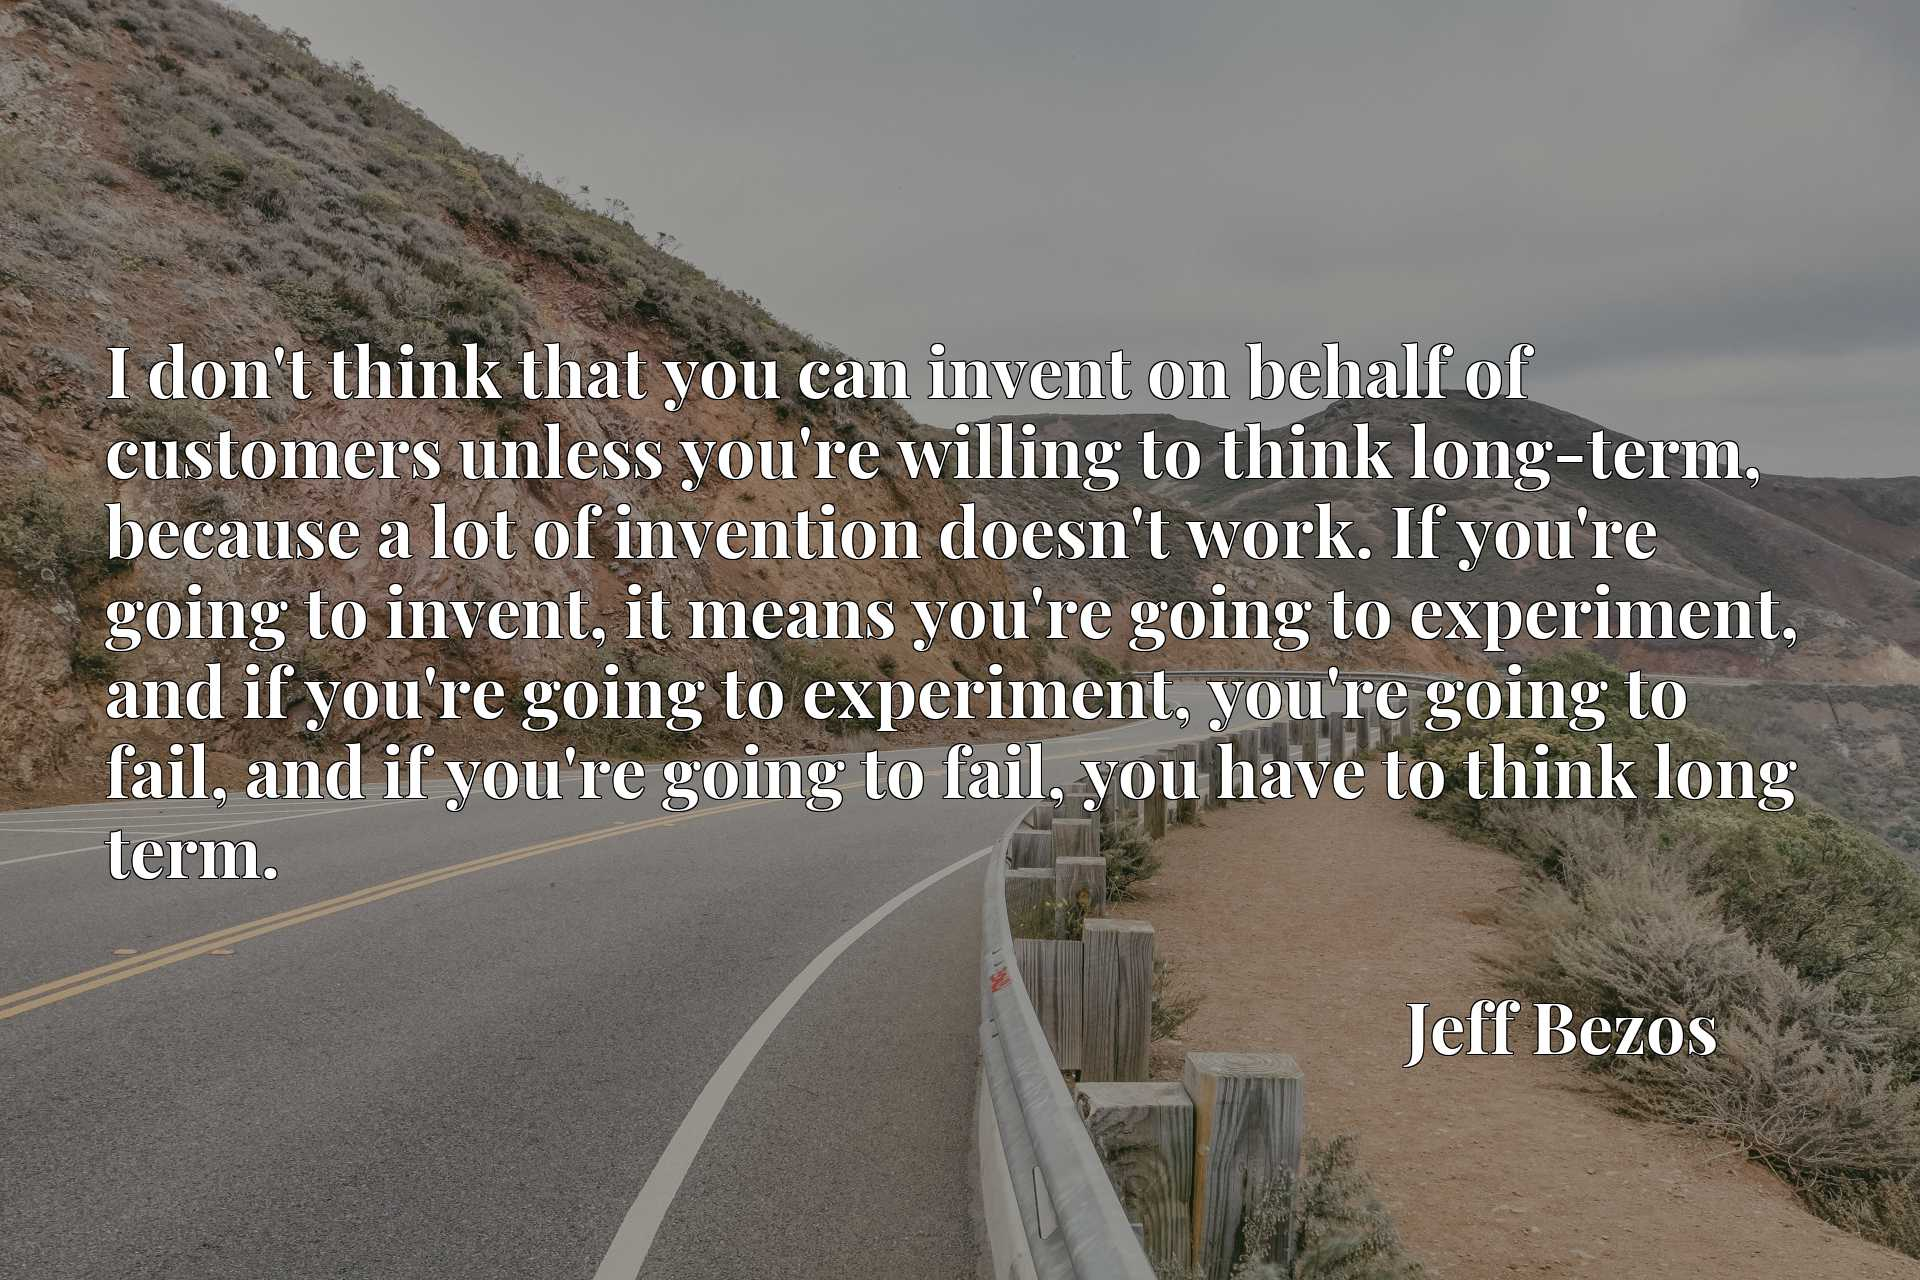 I don't think that you can invent on behalf of customers unless you're willing to think long-term, because a lot of invention doesn't work. If you're going to invent, it means you're going to experiment, and if you're going to experiment, you're going to fail, and if you're going to fail, you have to think long term.